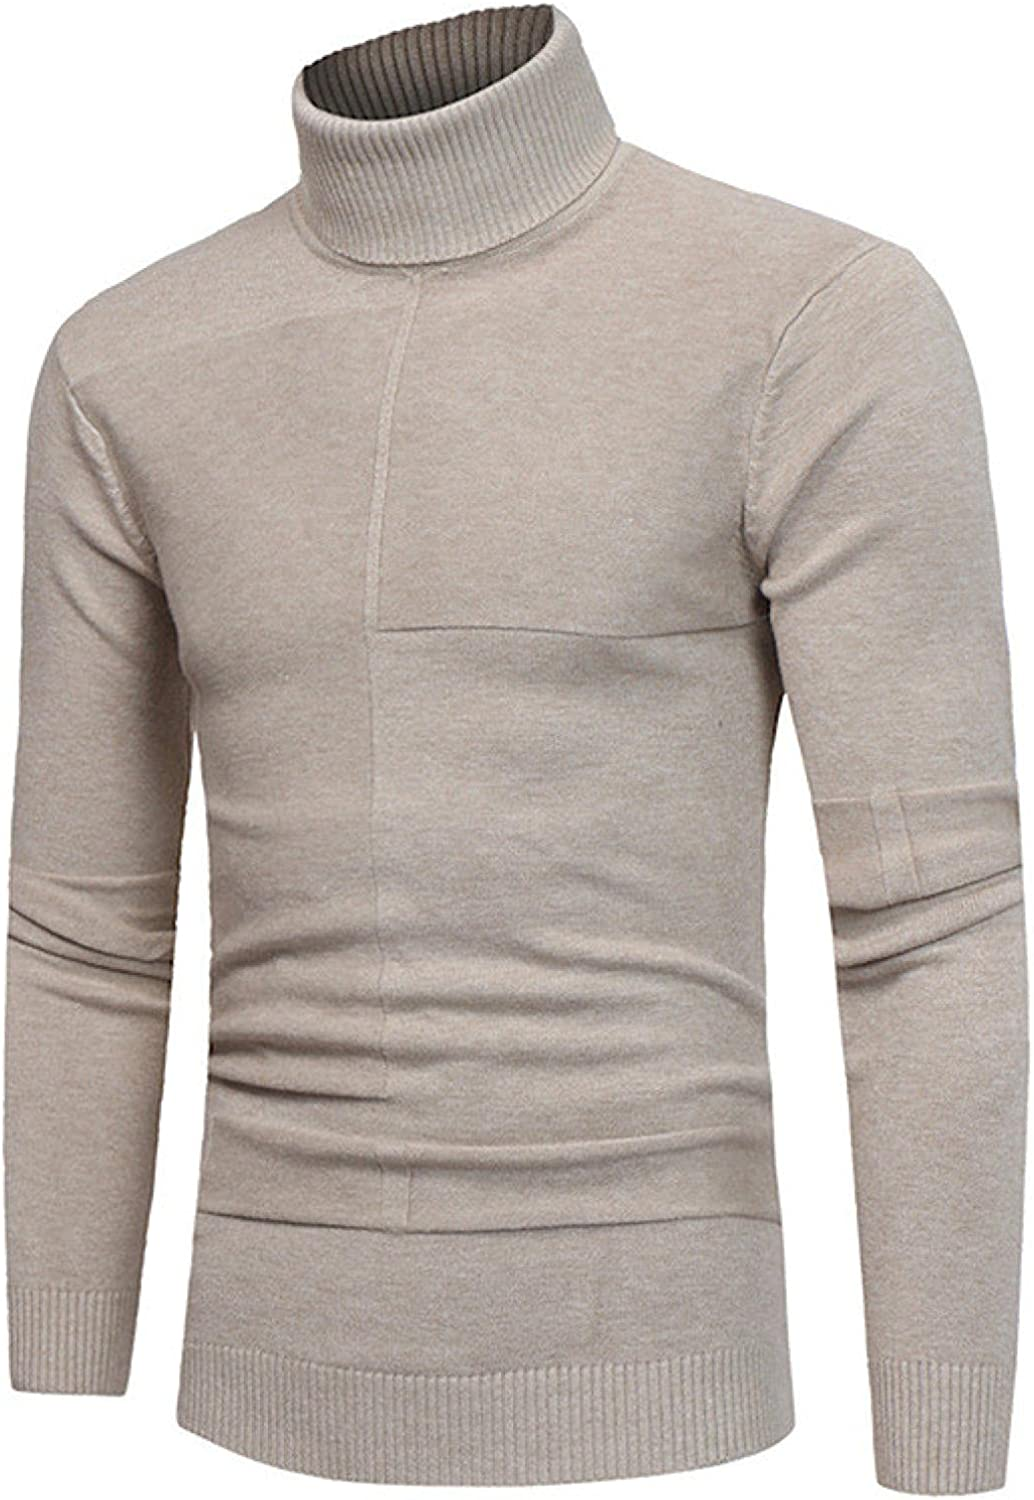 XXBR Turtleneck Pullover for Mens, Fall High Neck Sweater Long Sleeve Workout Slim Fit Basic Casual Warm Jumper Tops